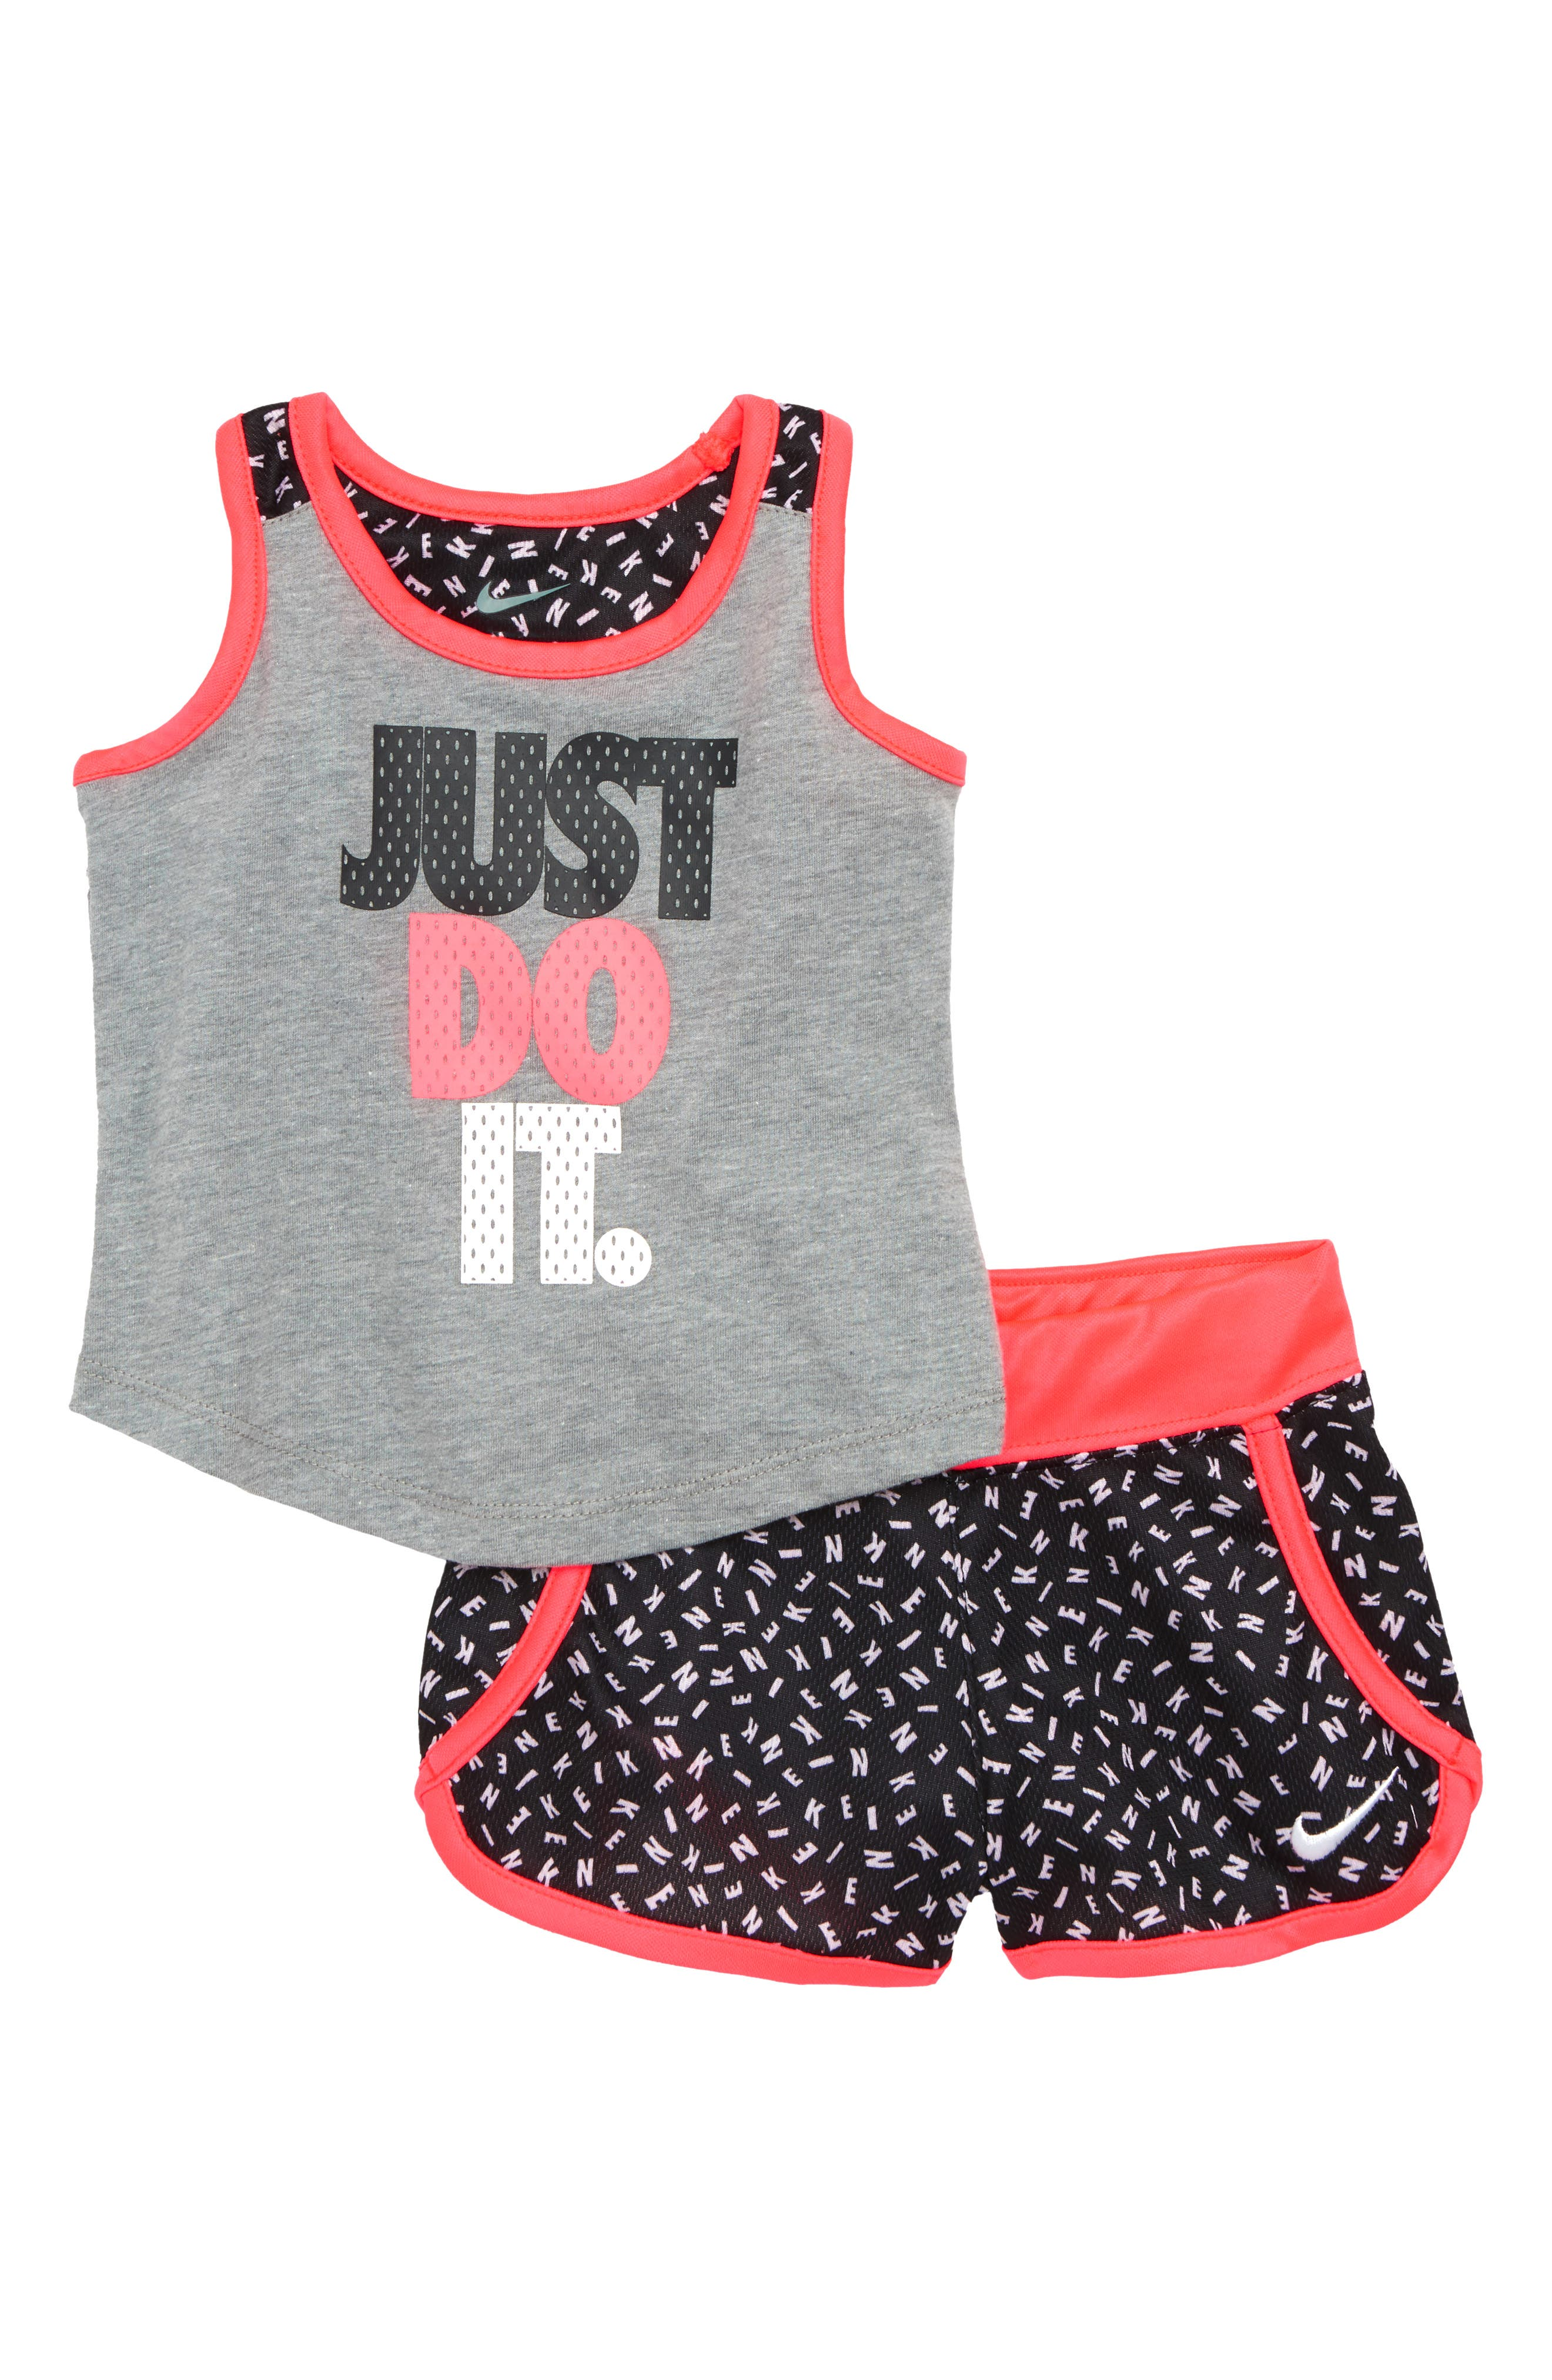 Just Dot It Tank & Shorts Set,                             Main thumbnail 1, color,